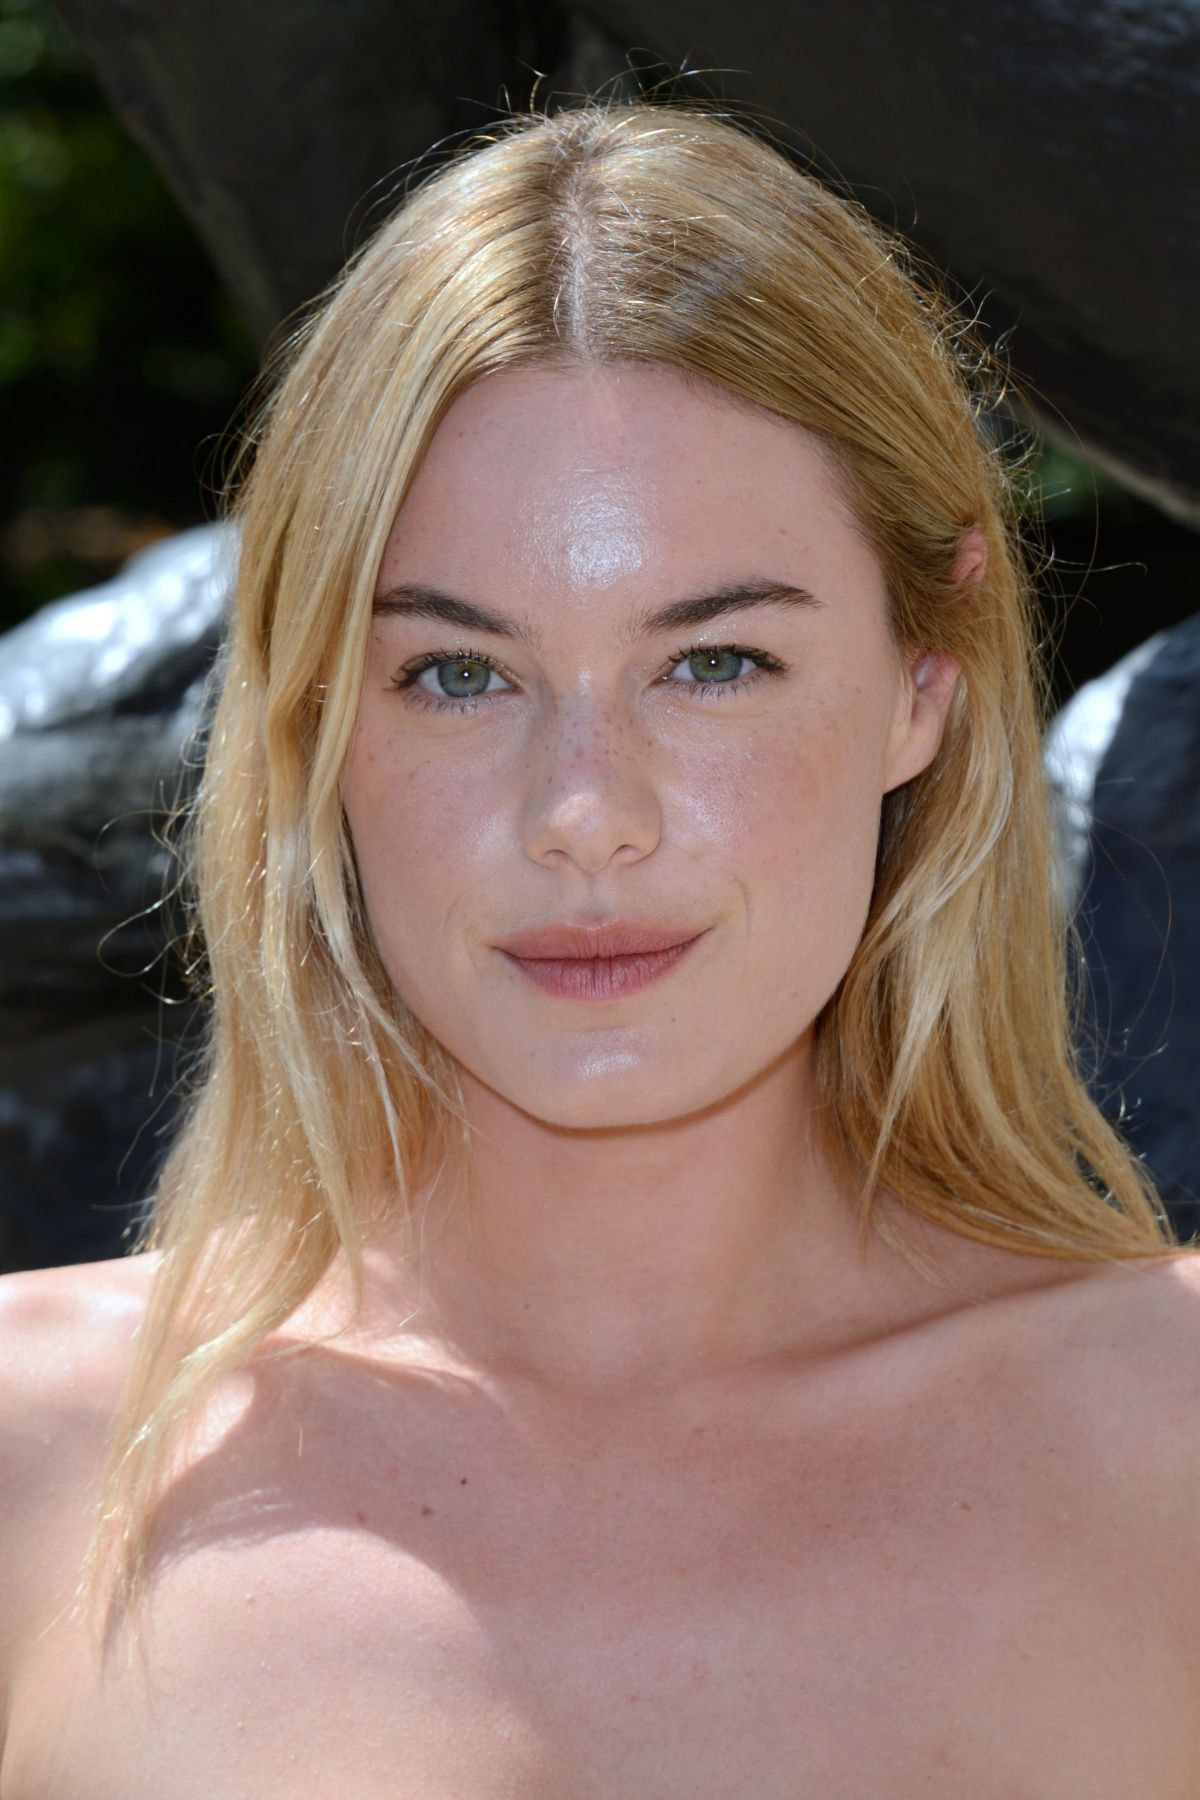 Camille Rowe. 2018-2019 celebrityes photos leaks! nude (66 photos), Topless Celebrites image